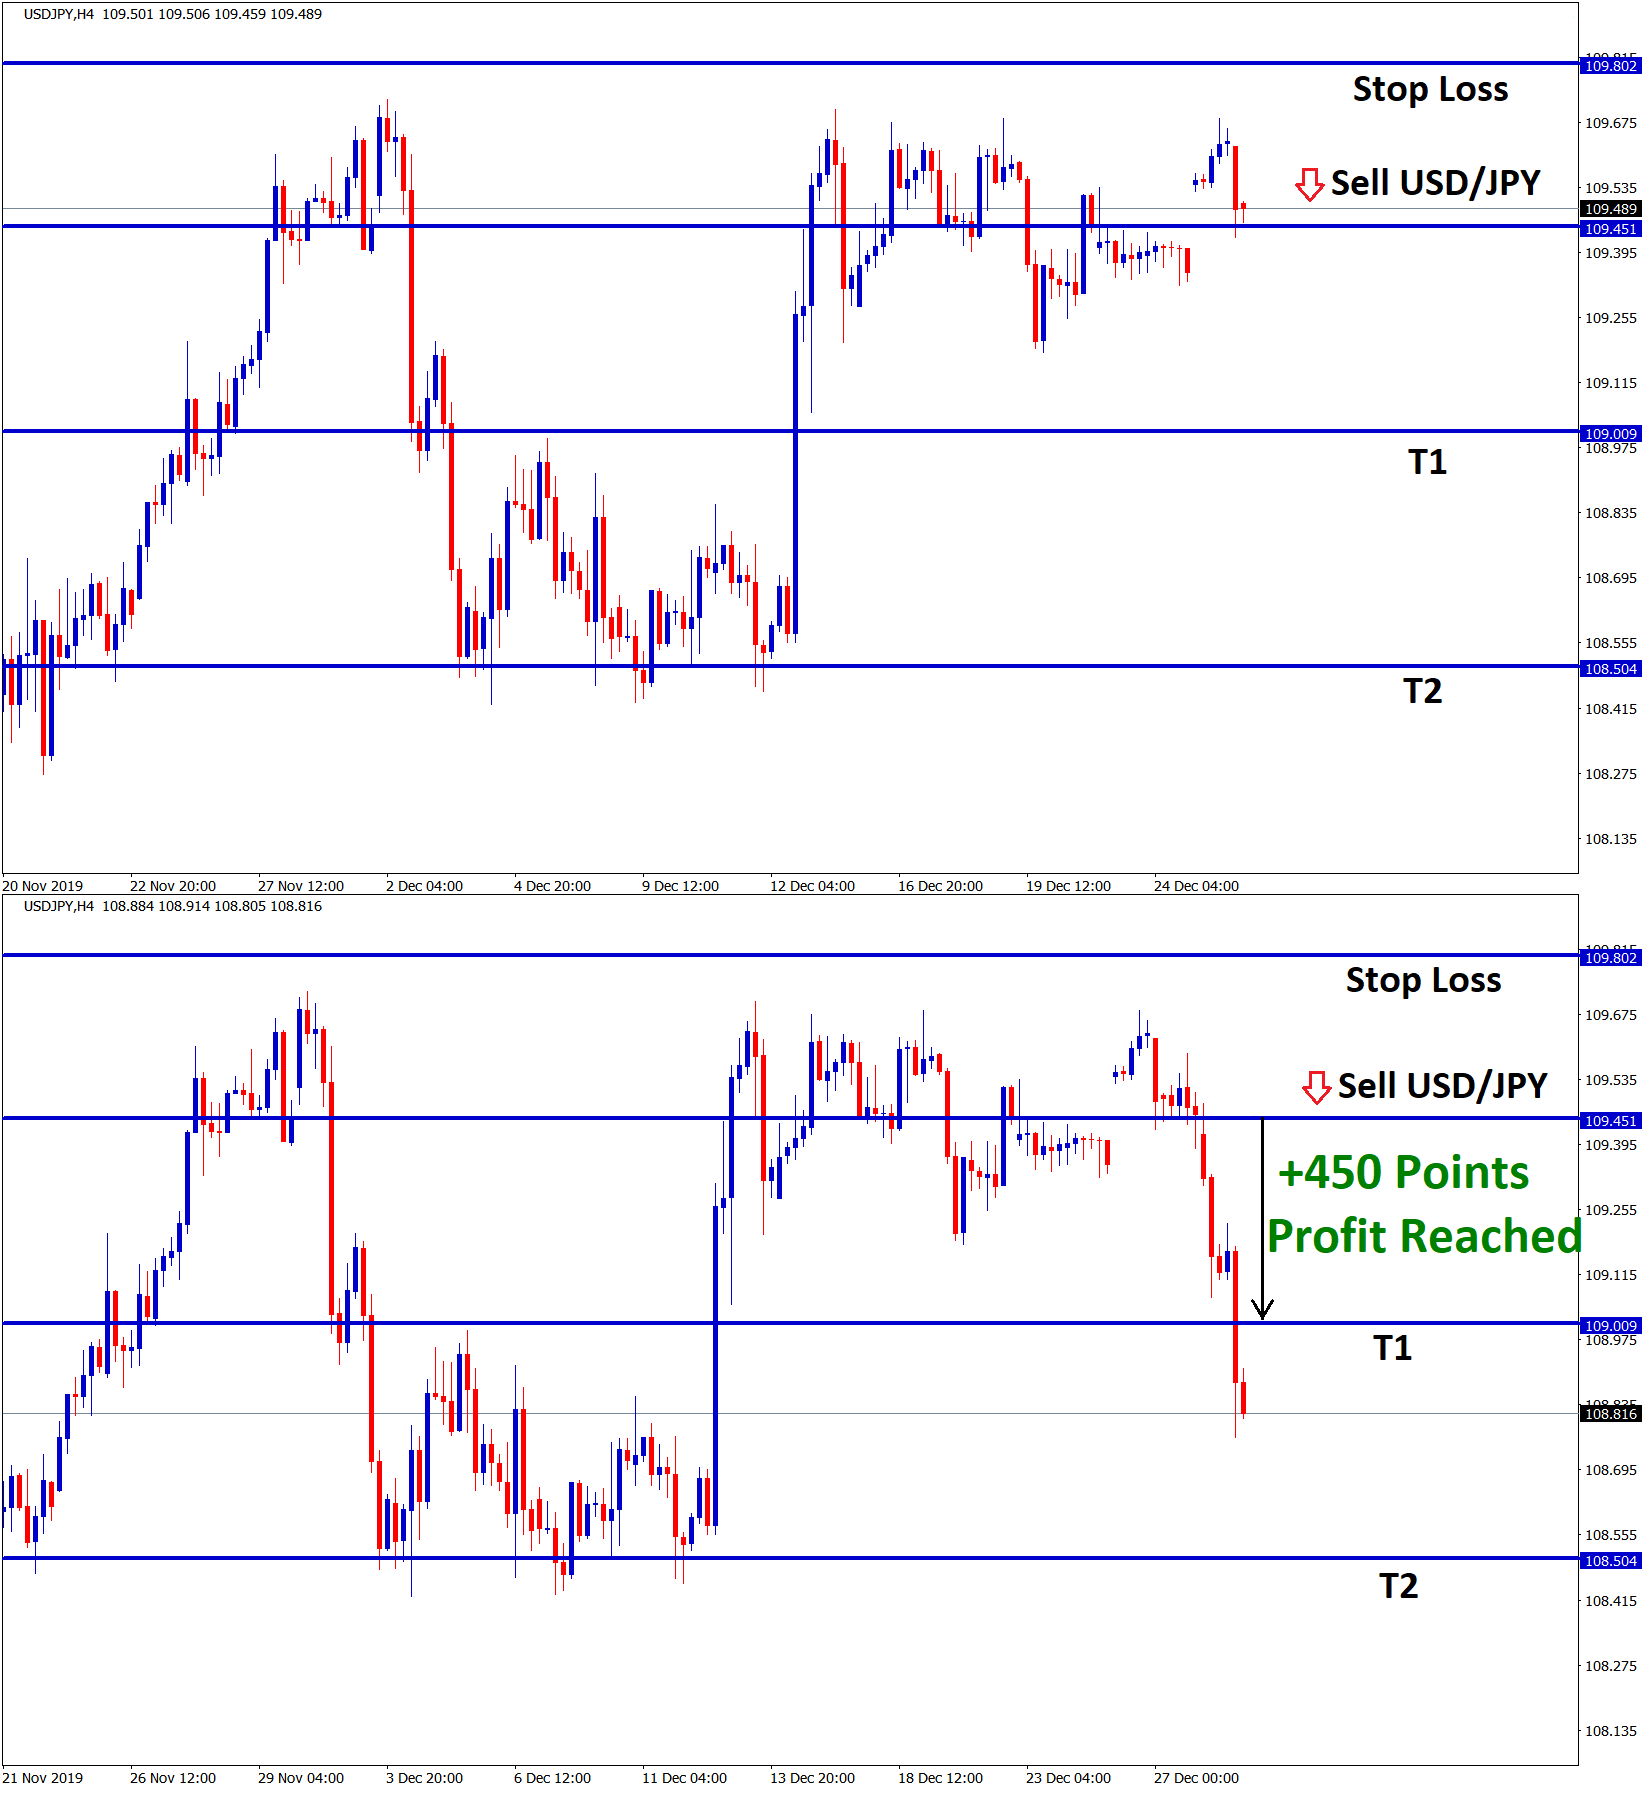 usd jpy reached the take profit with +450 points